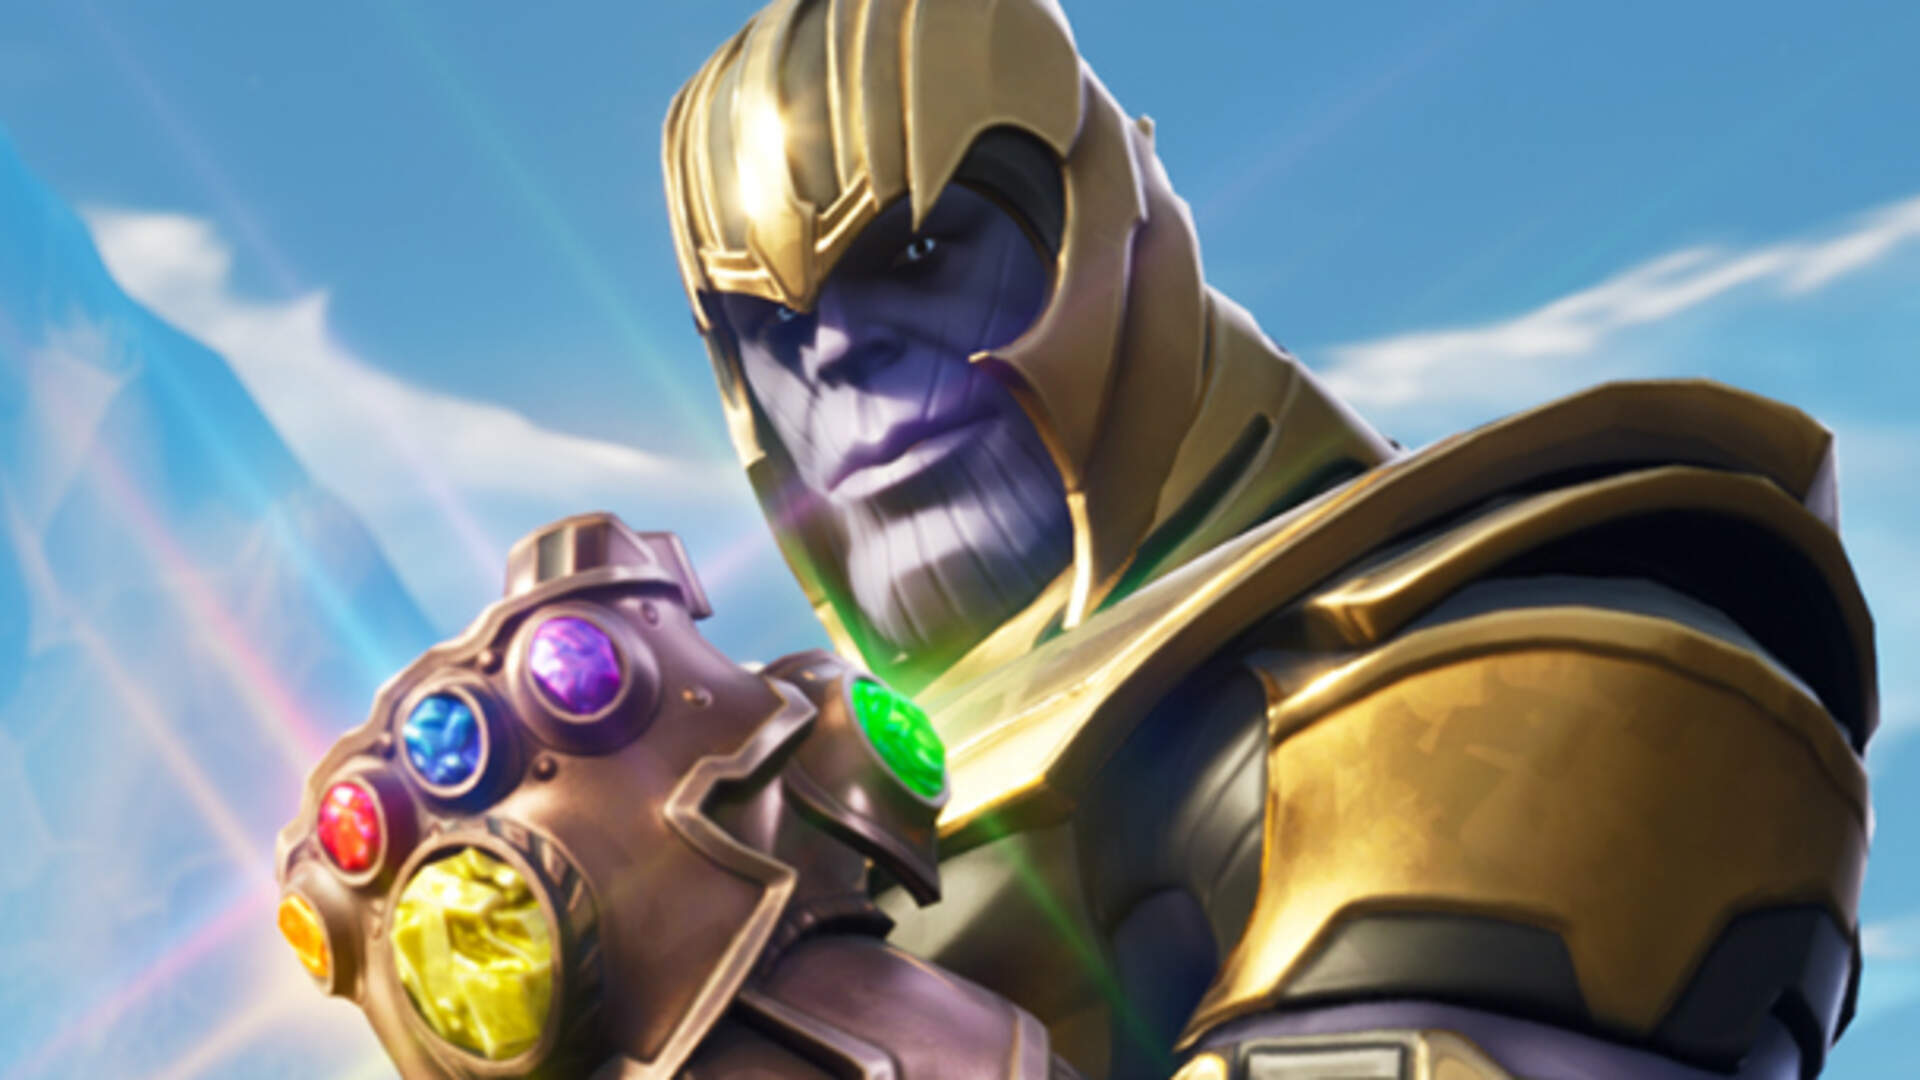 Avengers: Infinity War's Thanos Isn't As Threatening in Fortnite Battle Royale